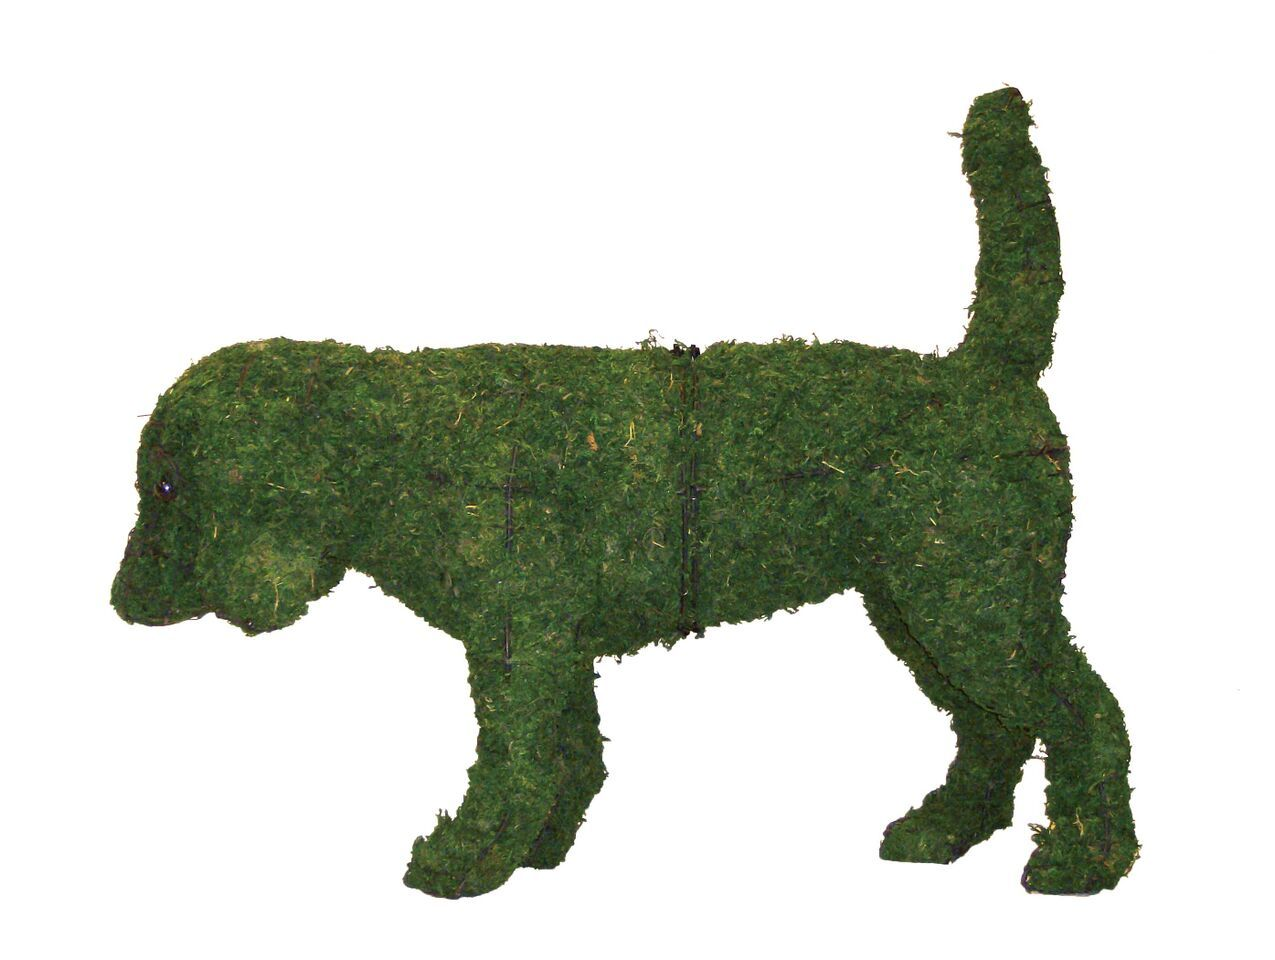 Beagle Rust Proof Steel Topiary Frame Filled with Green Dyed Sphagnum Moss - Henderson Garden Supply